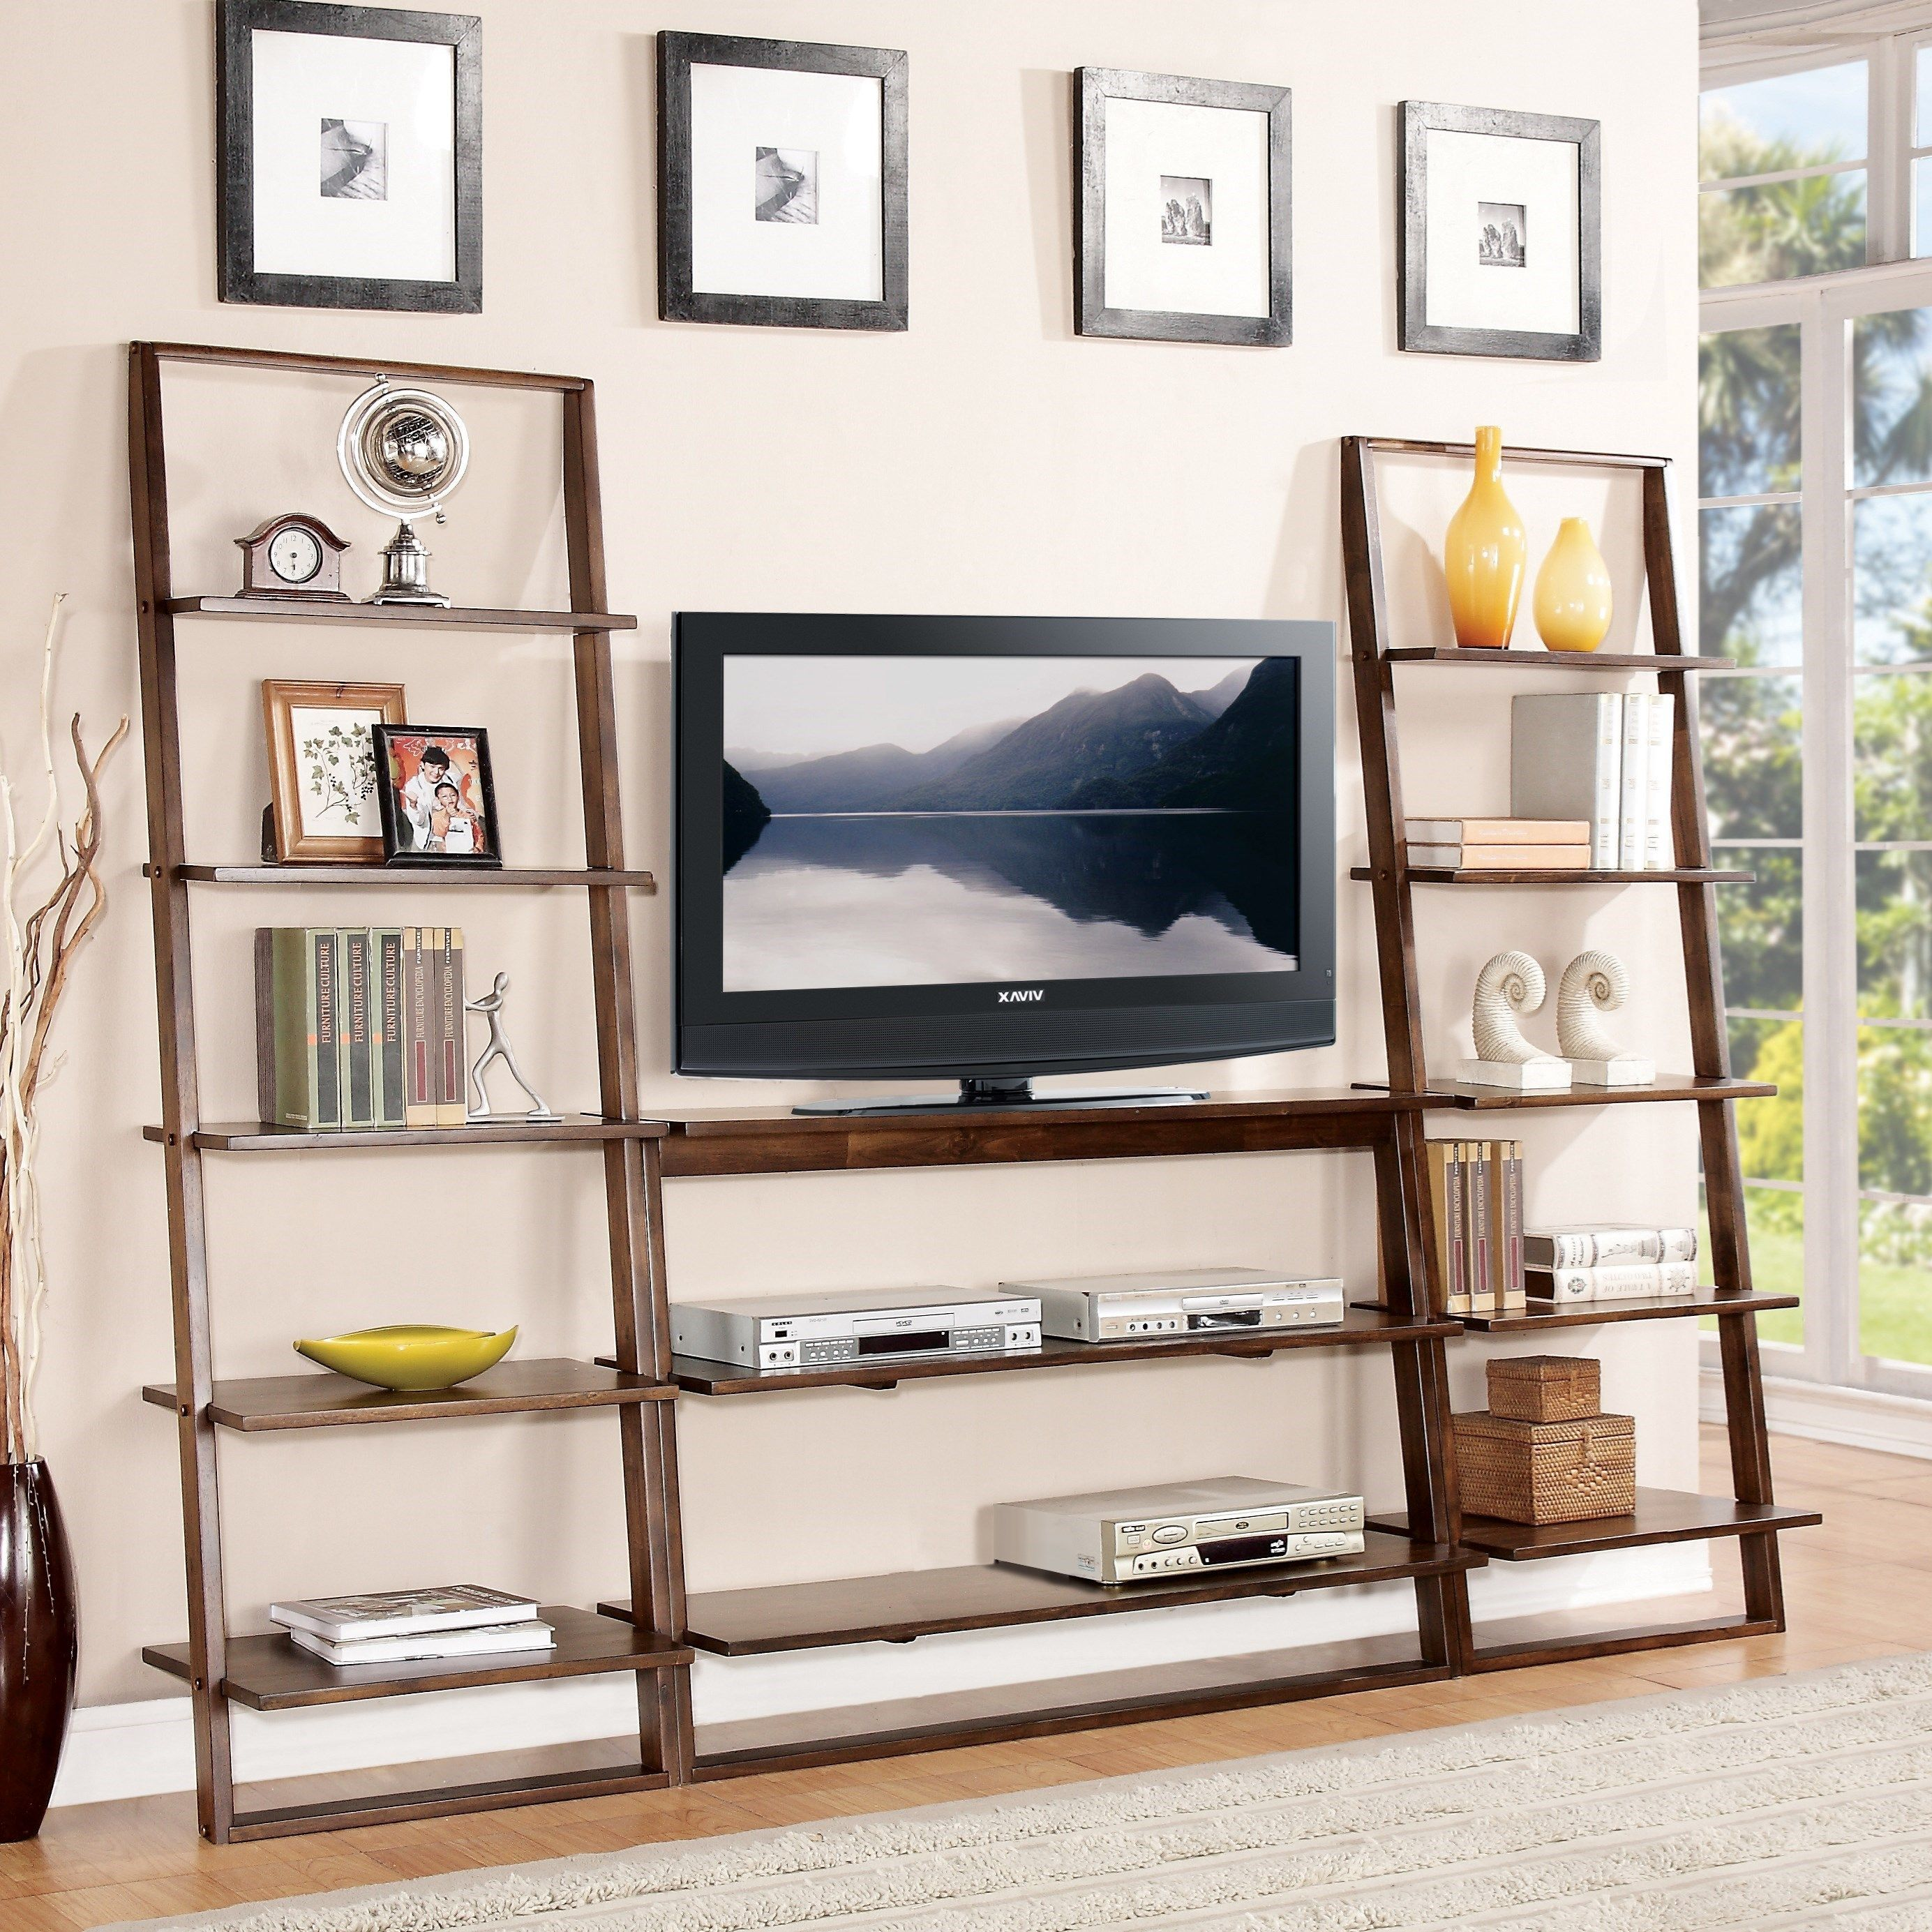 htm classic bookcase with idfdesign luxury style bookcases tv stand